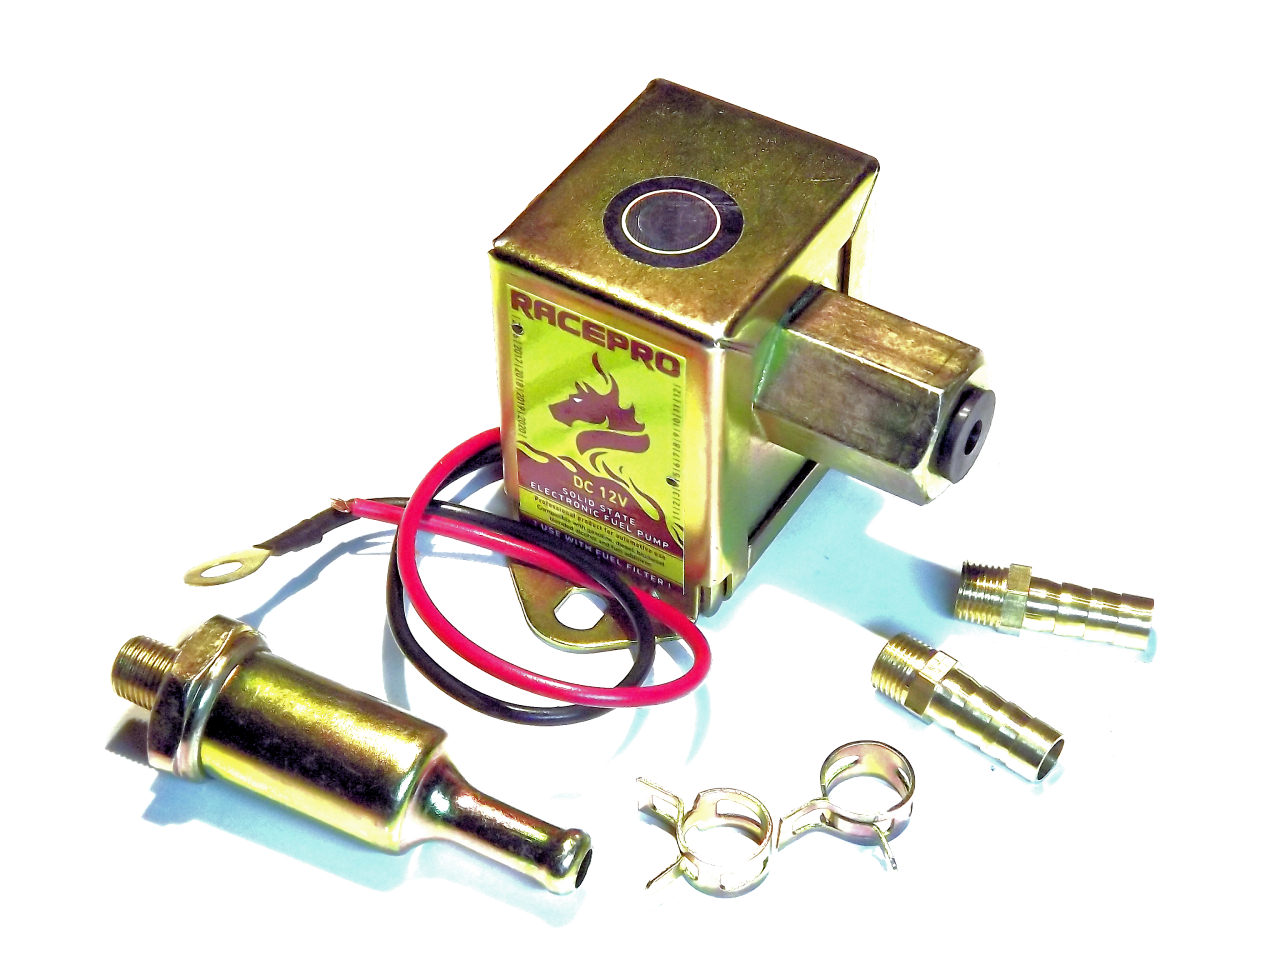 Racepro 40105 Fuel Pump Electric 12v Square Universal Facet Filters 8mm Unions Hose Clips And Filter Included